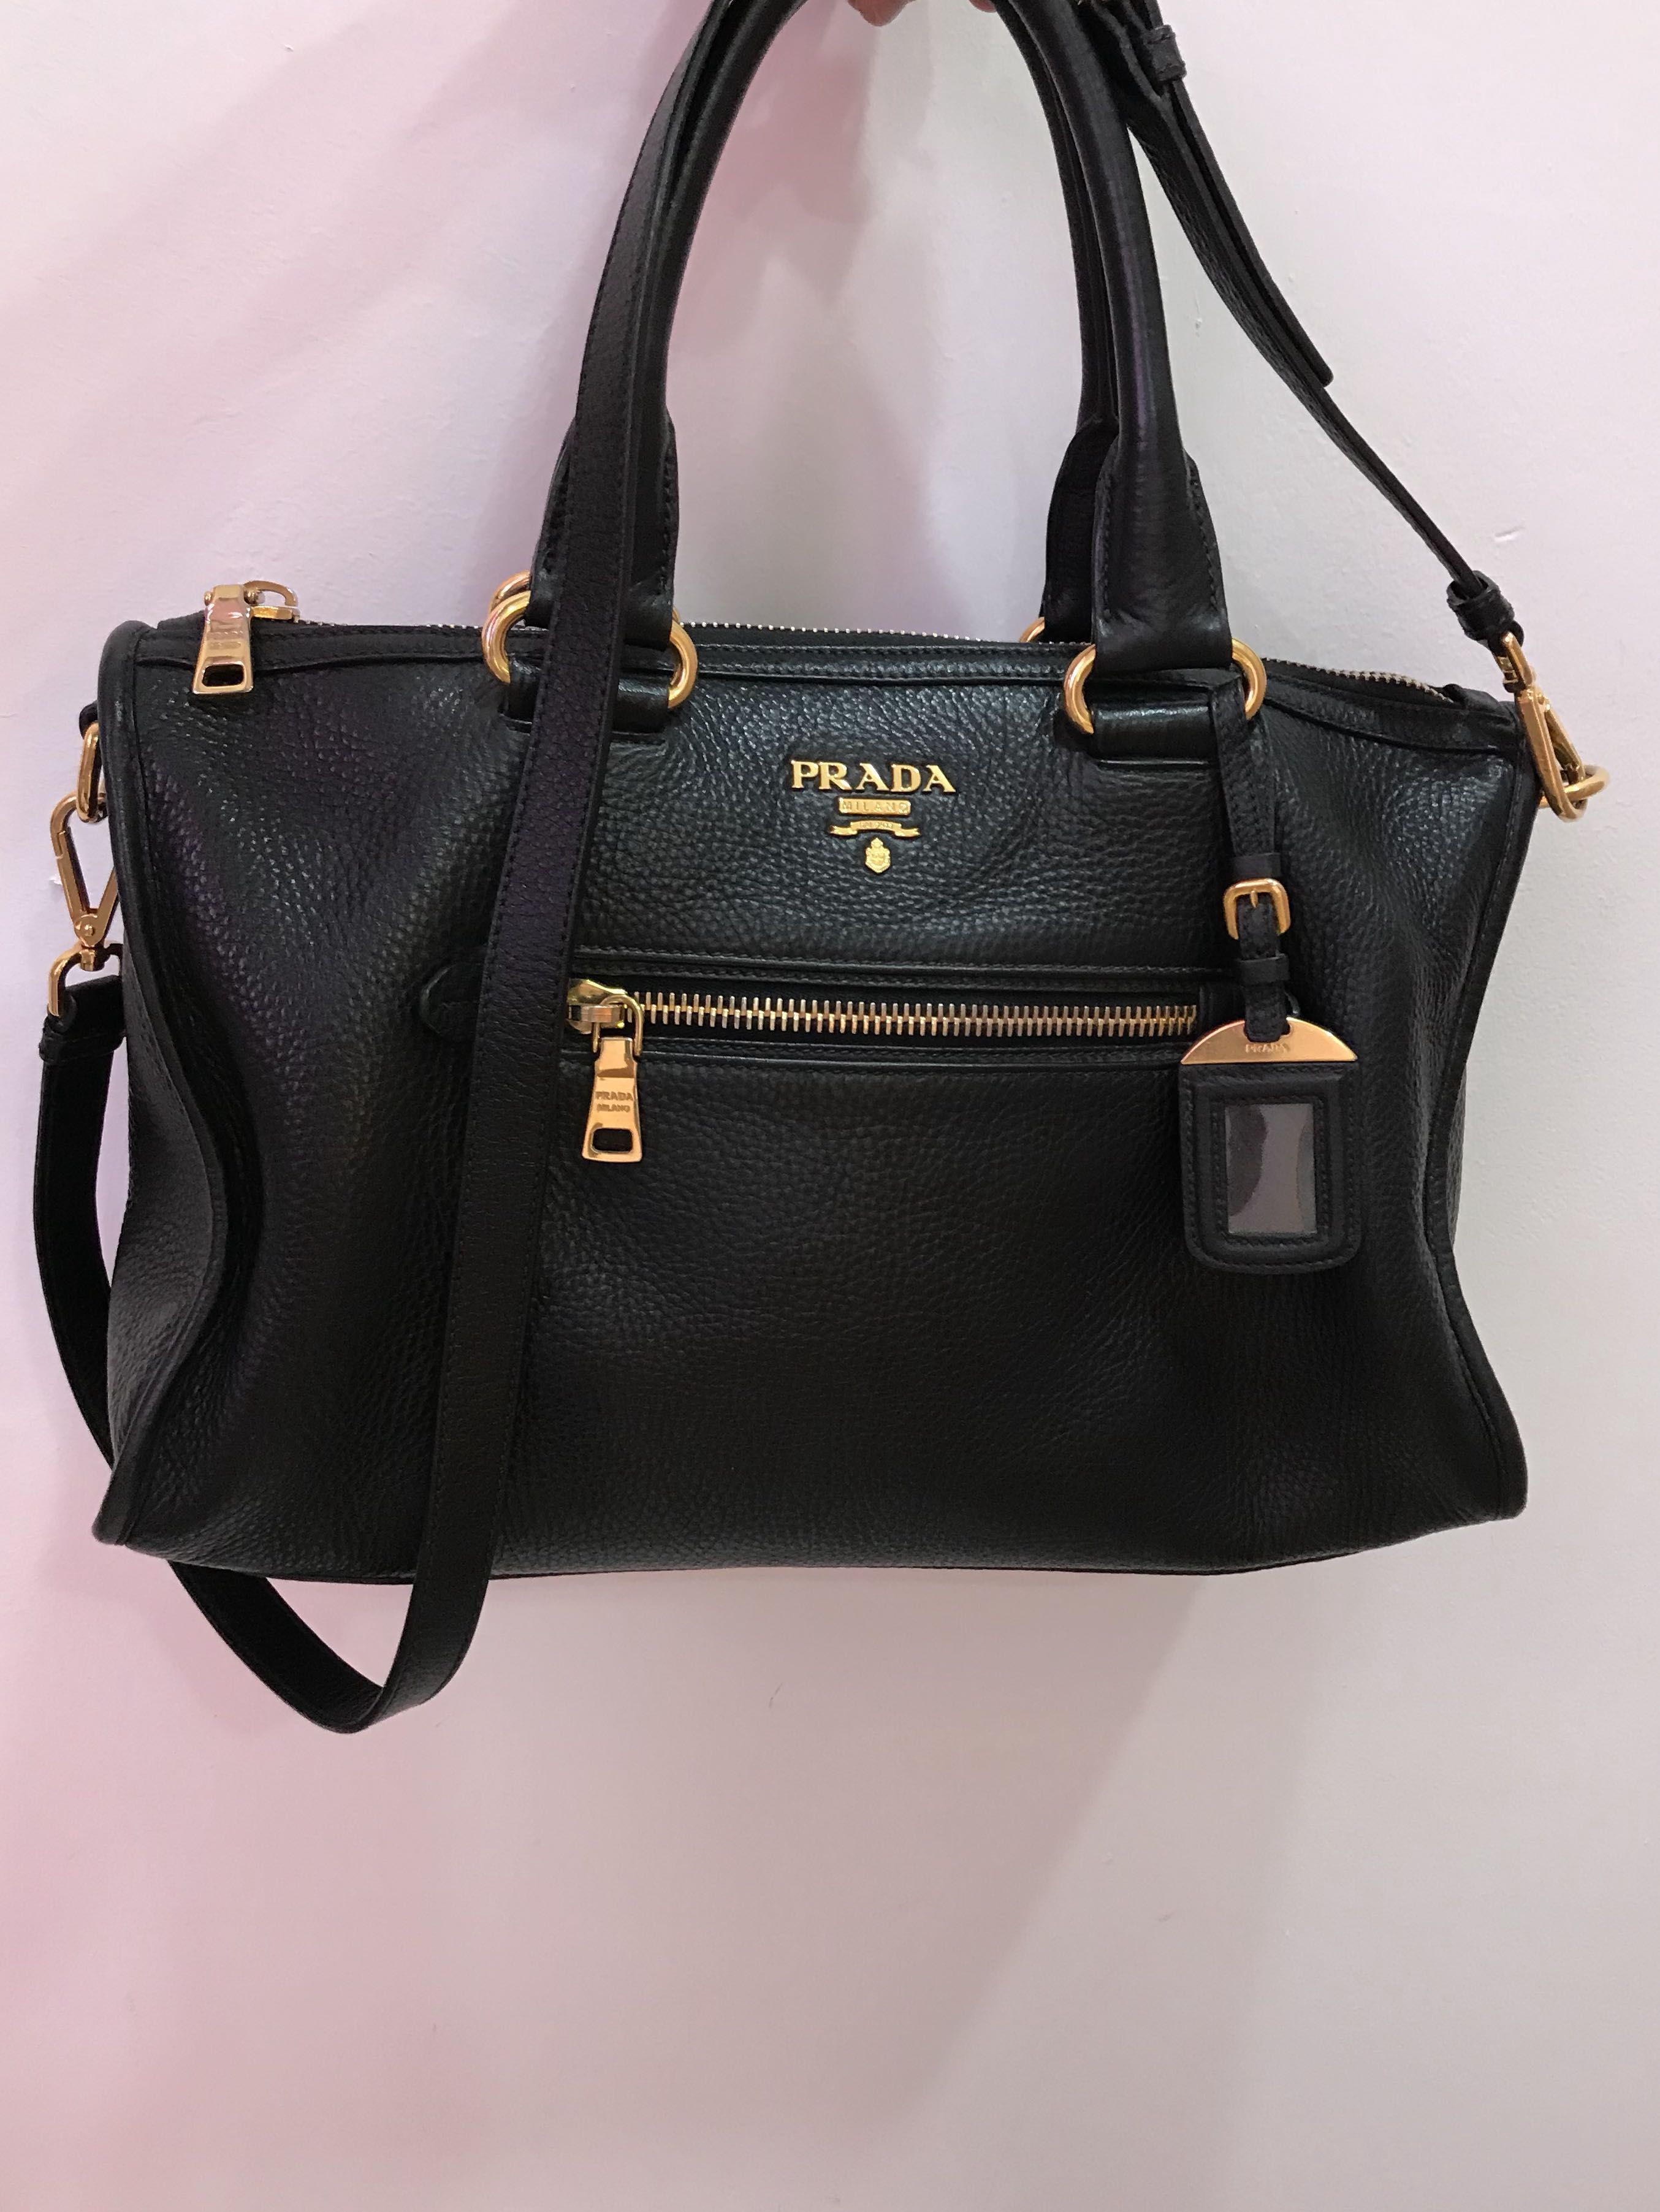 e7cd33f546e0bb Prada Bauletto BL0805 Vit .Daino Black calf, Luxury, Bags & Wallets,  Handbags on Carousell